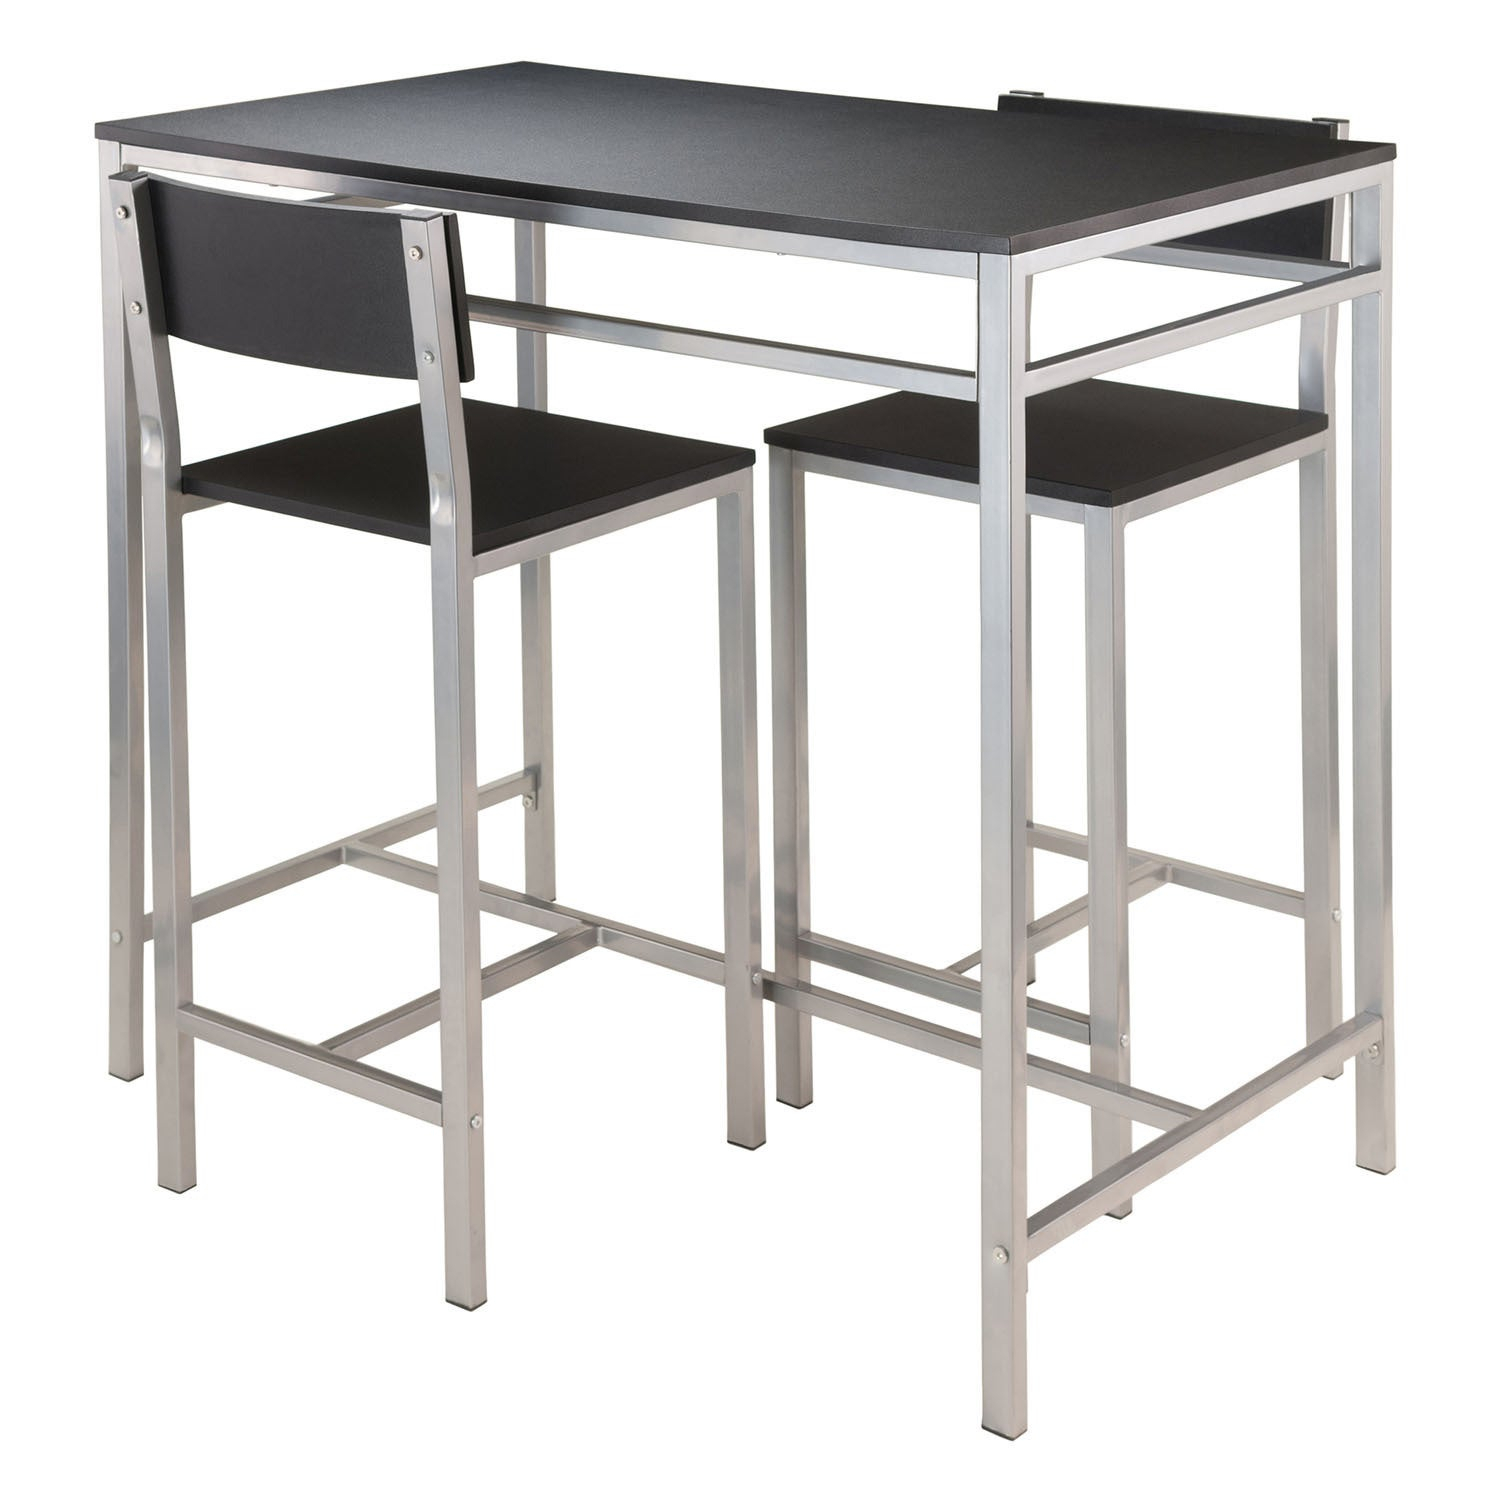 Winsome Hanley 3 Piece Pub Height Dining Table Set With 2 Stools Inside Most Up To Date Winsome 3 Piece Counter Height Dining Sets (Image 11 of 20)